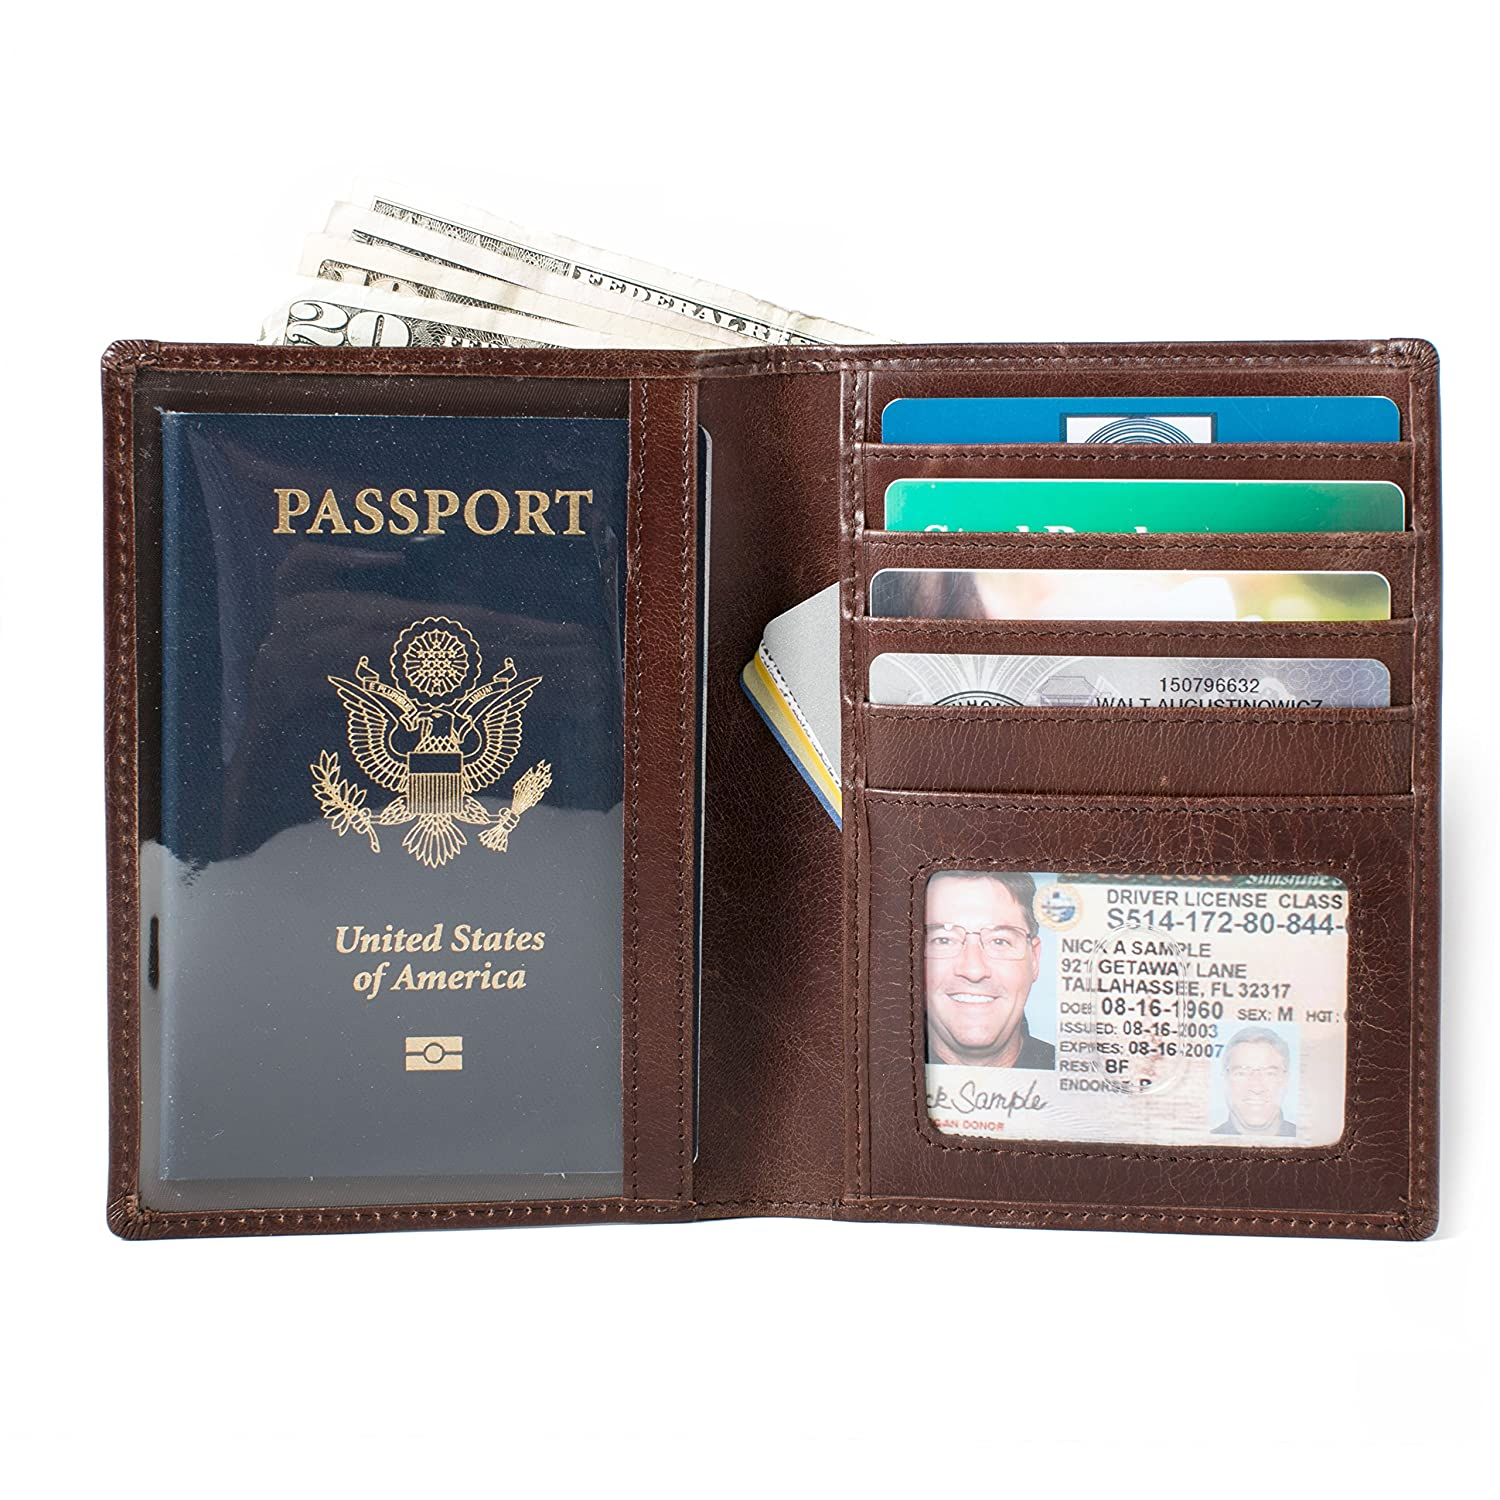 Rugged Leather Passport Wallet RFID Passport Stonewashed Finish Protective Wallets for Men and Women Brown IDSH7223